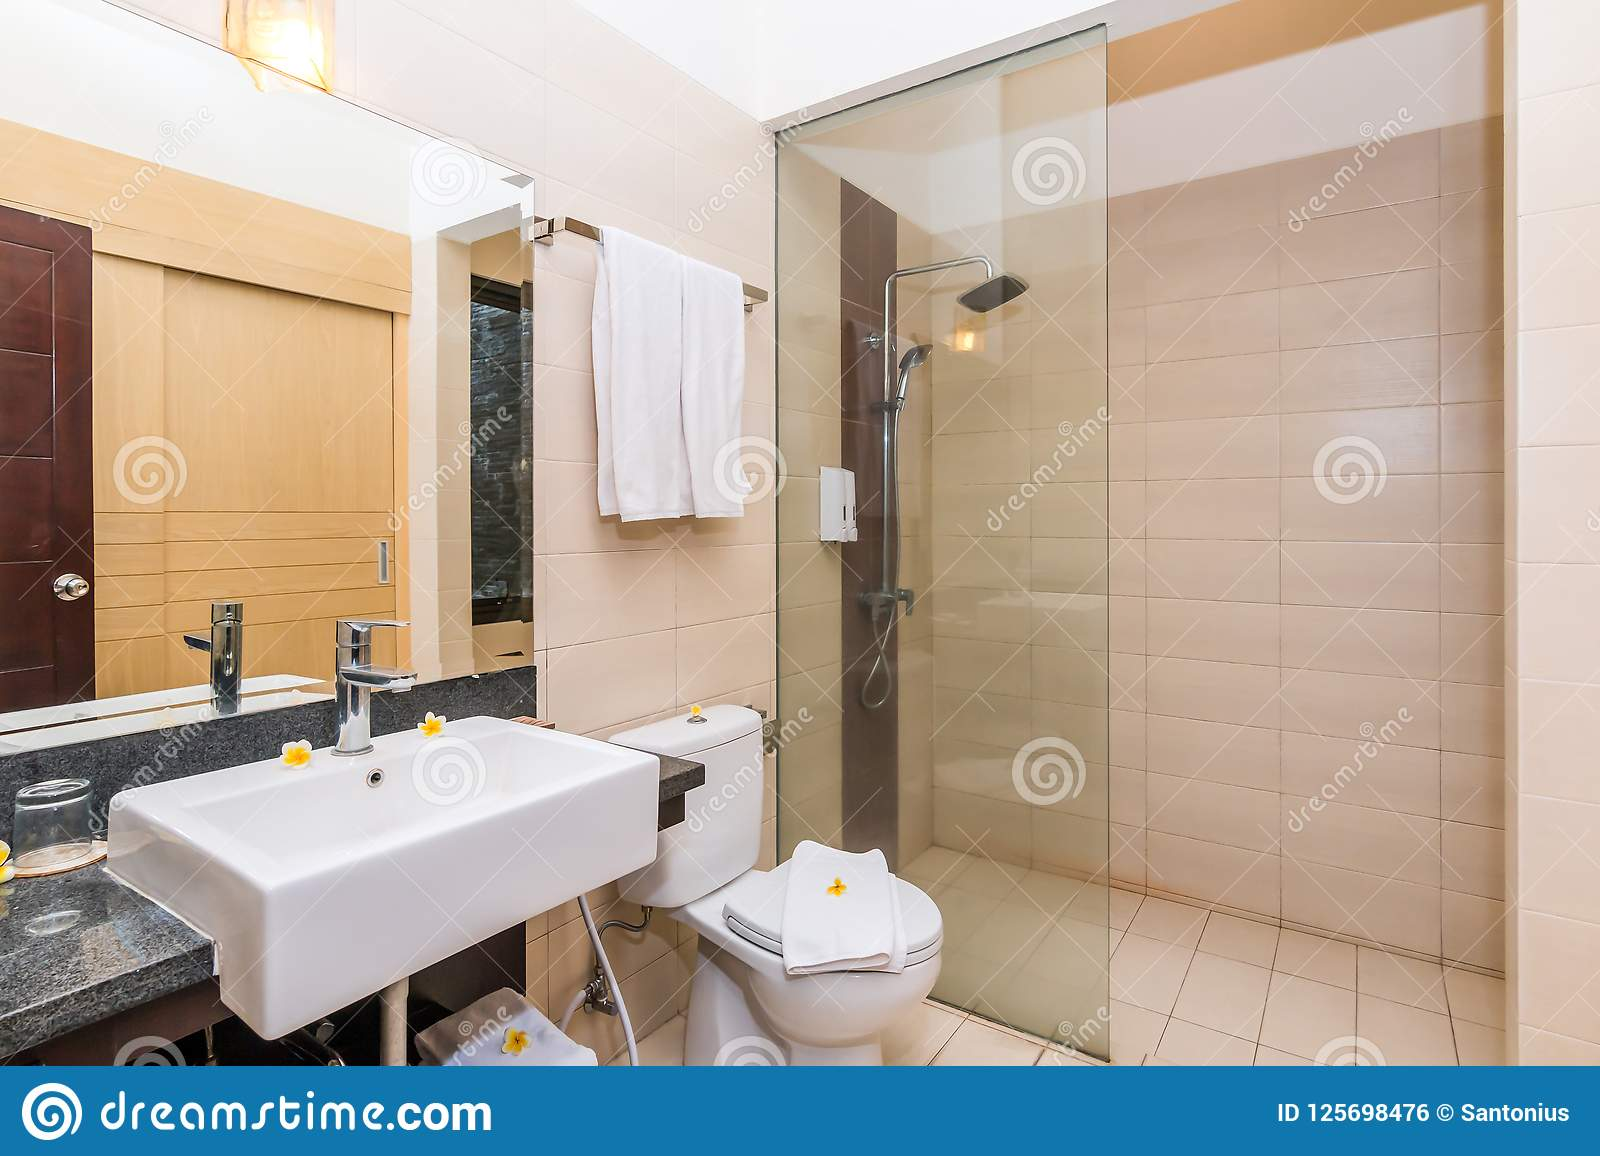 Cheap And Small Hotel Bathroom Stock Photo Image Of Beautiful Soap 125698476